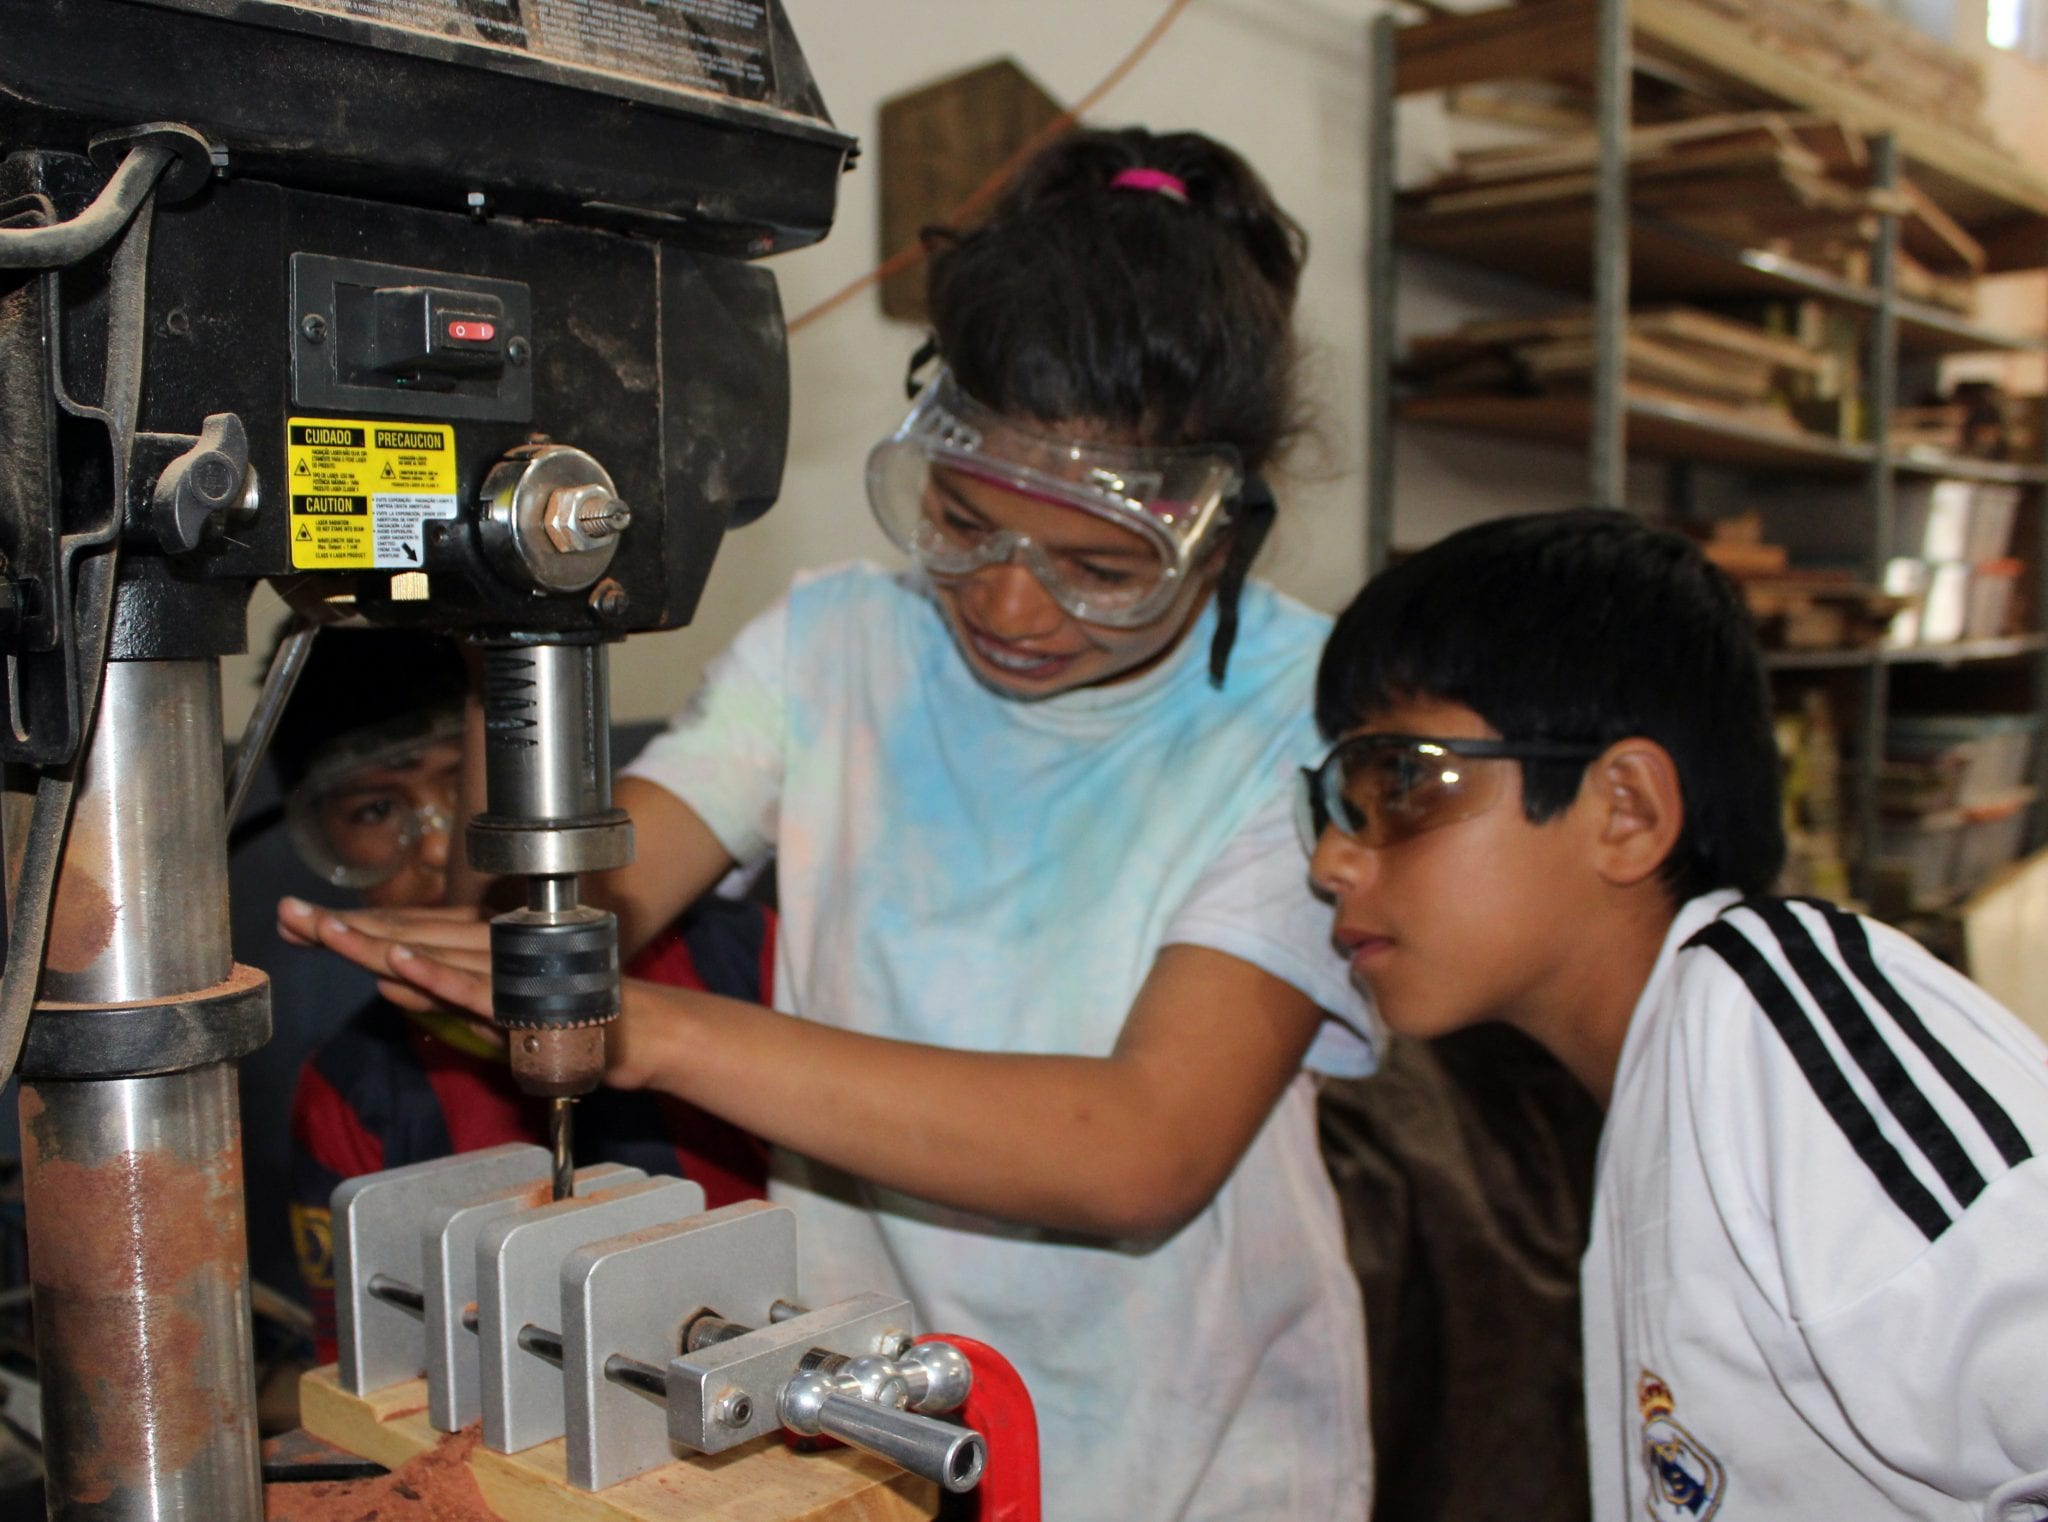 Carpentry classes for girls and boys